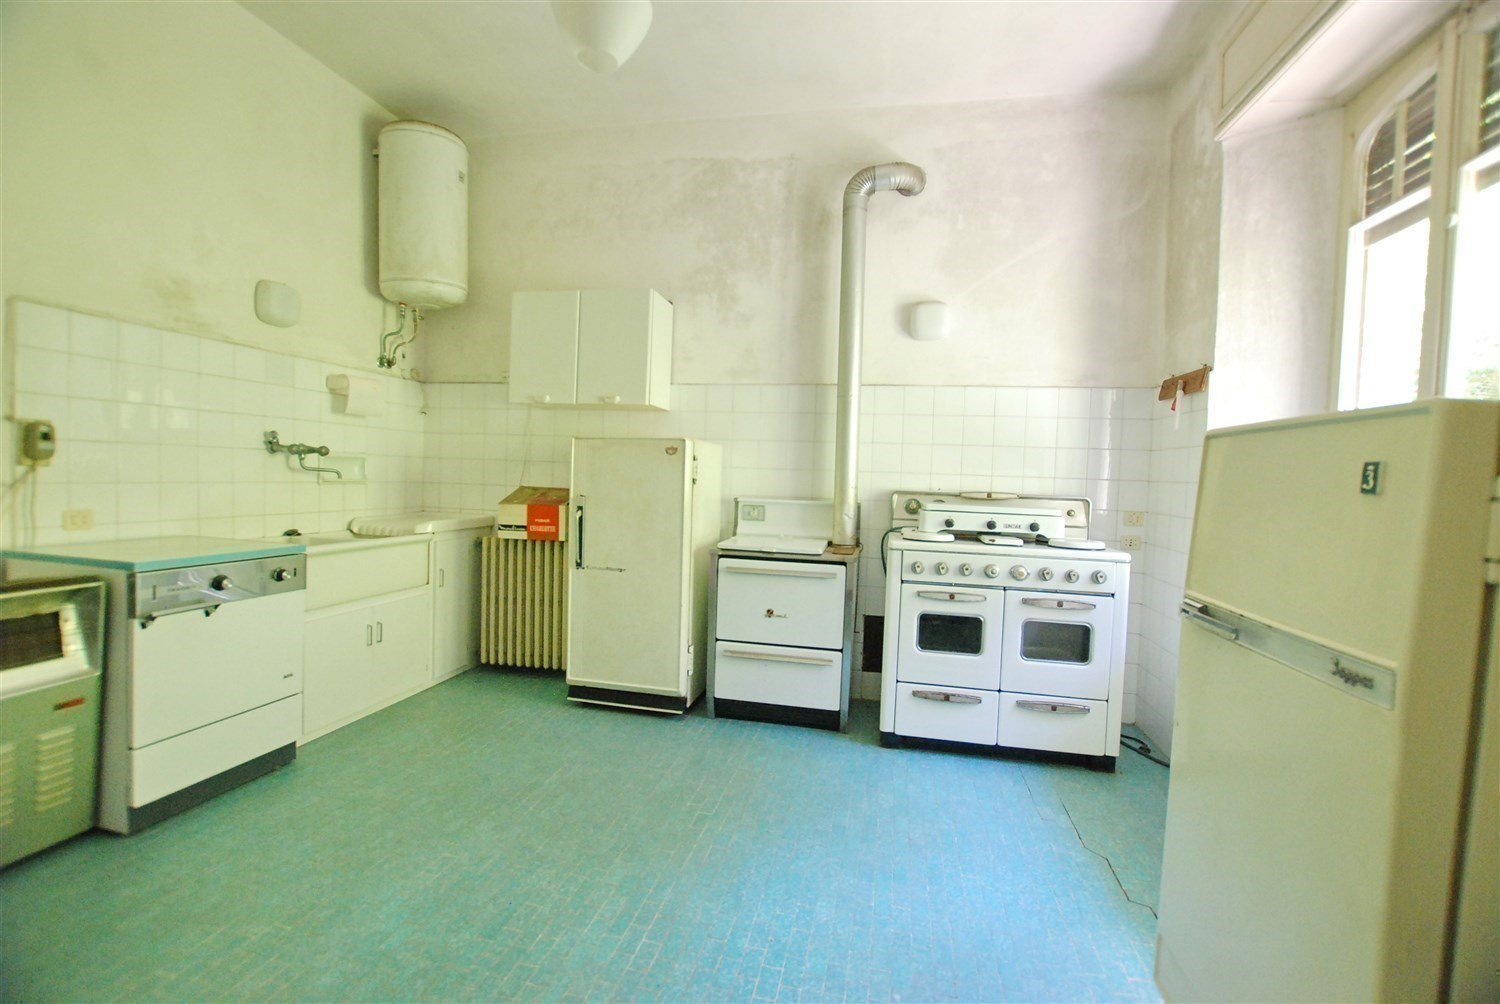 Period villa to be restored for sale in Gignese centre - large kitchen